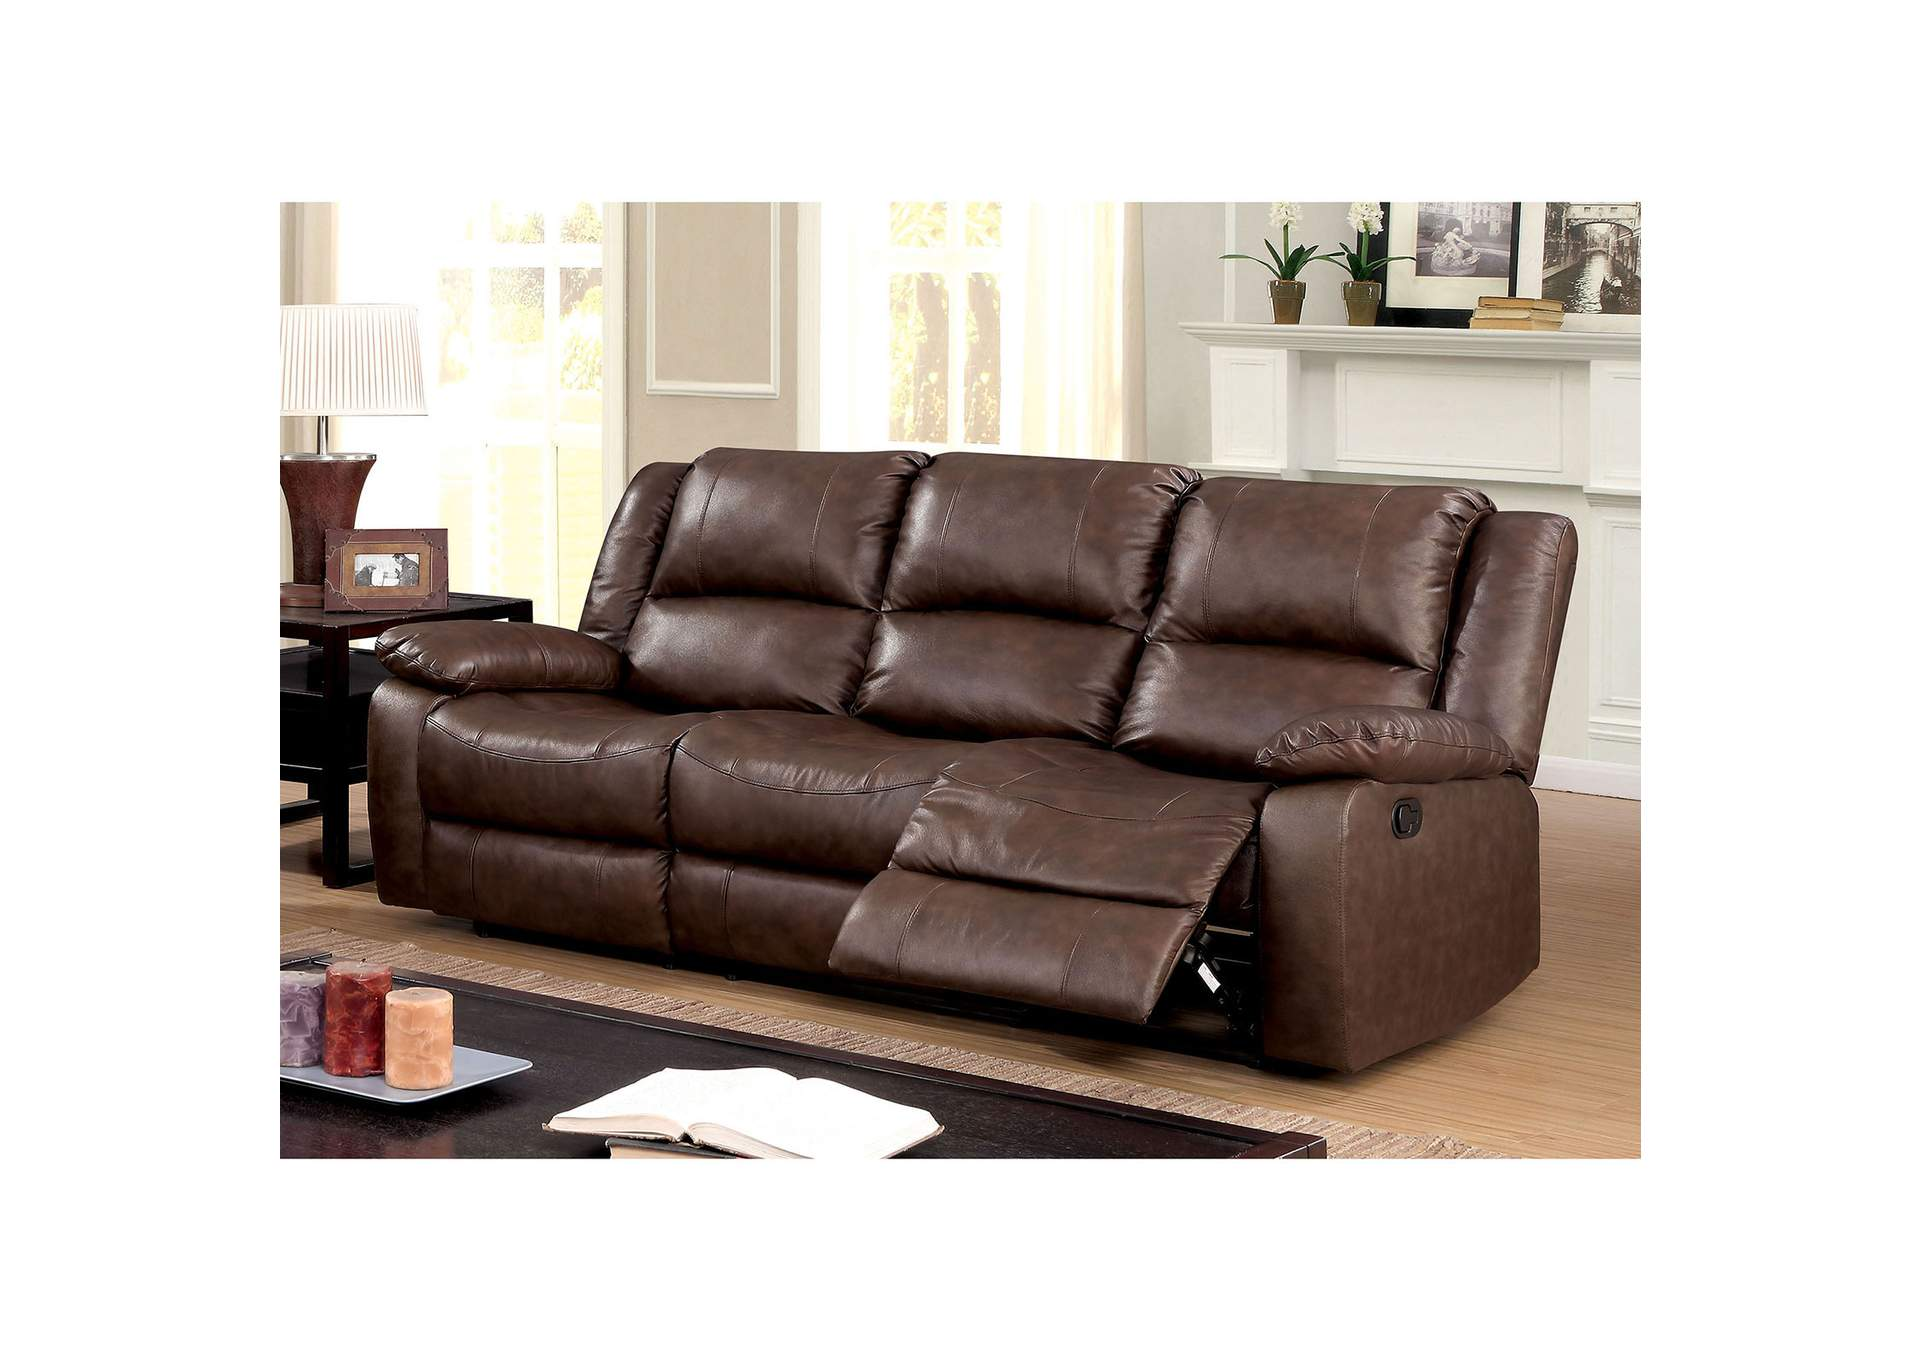 Best Buy Furniture and Mattress Kris Brown Sofa w/2 Recliners